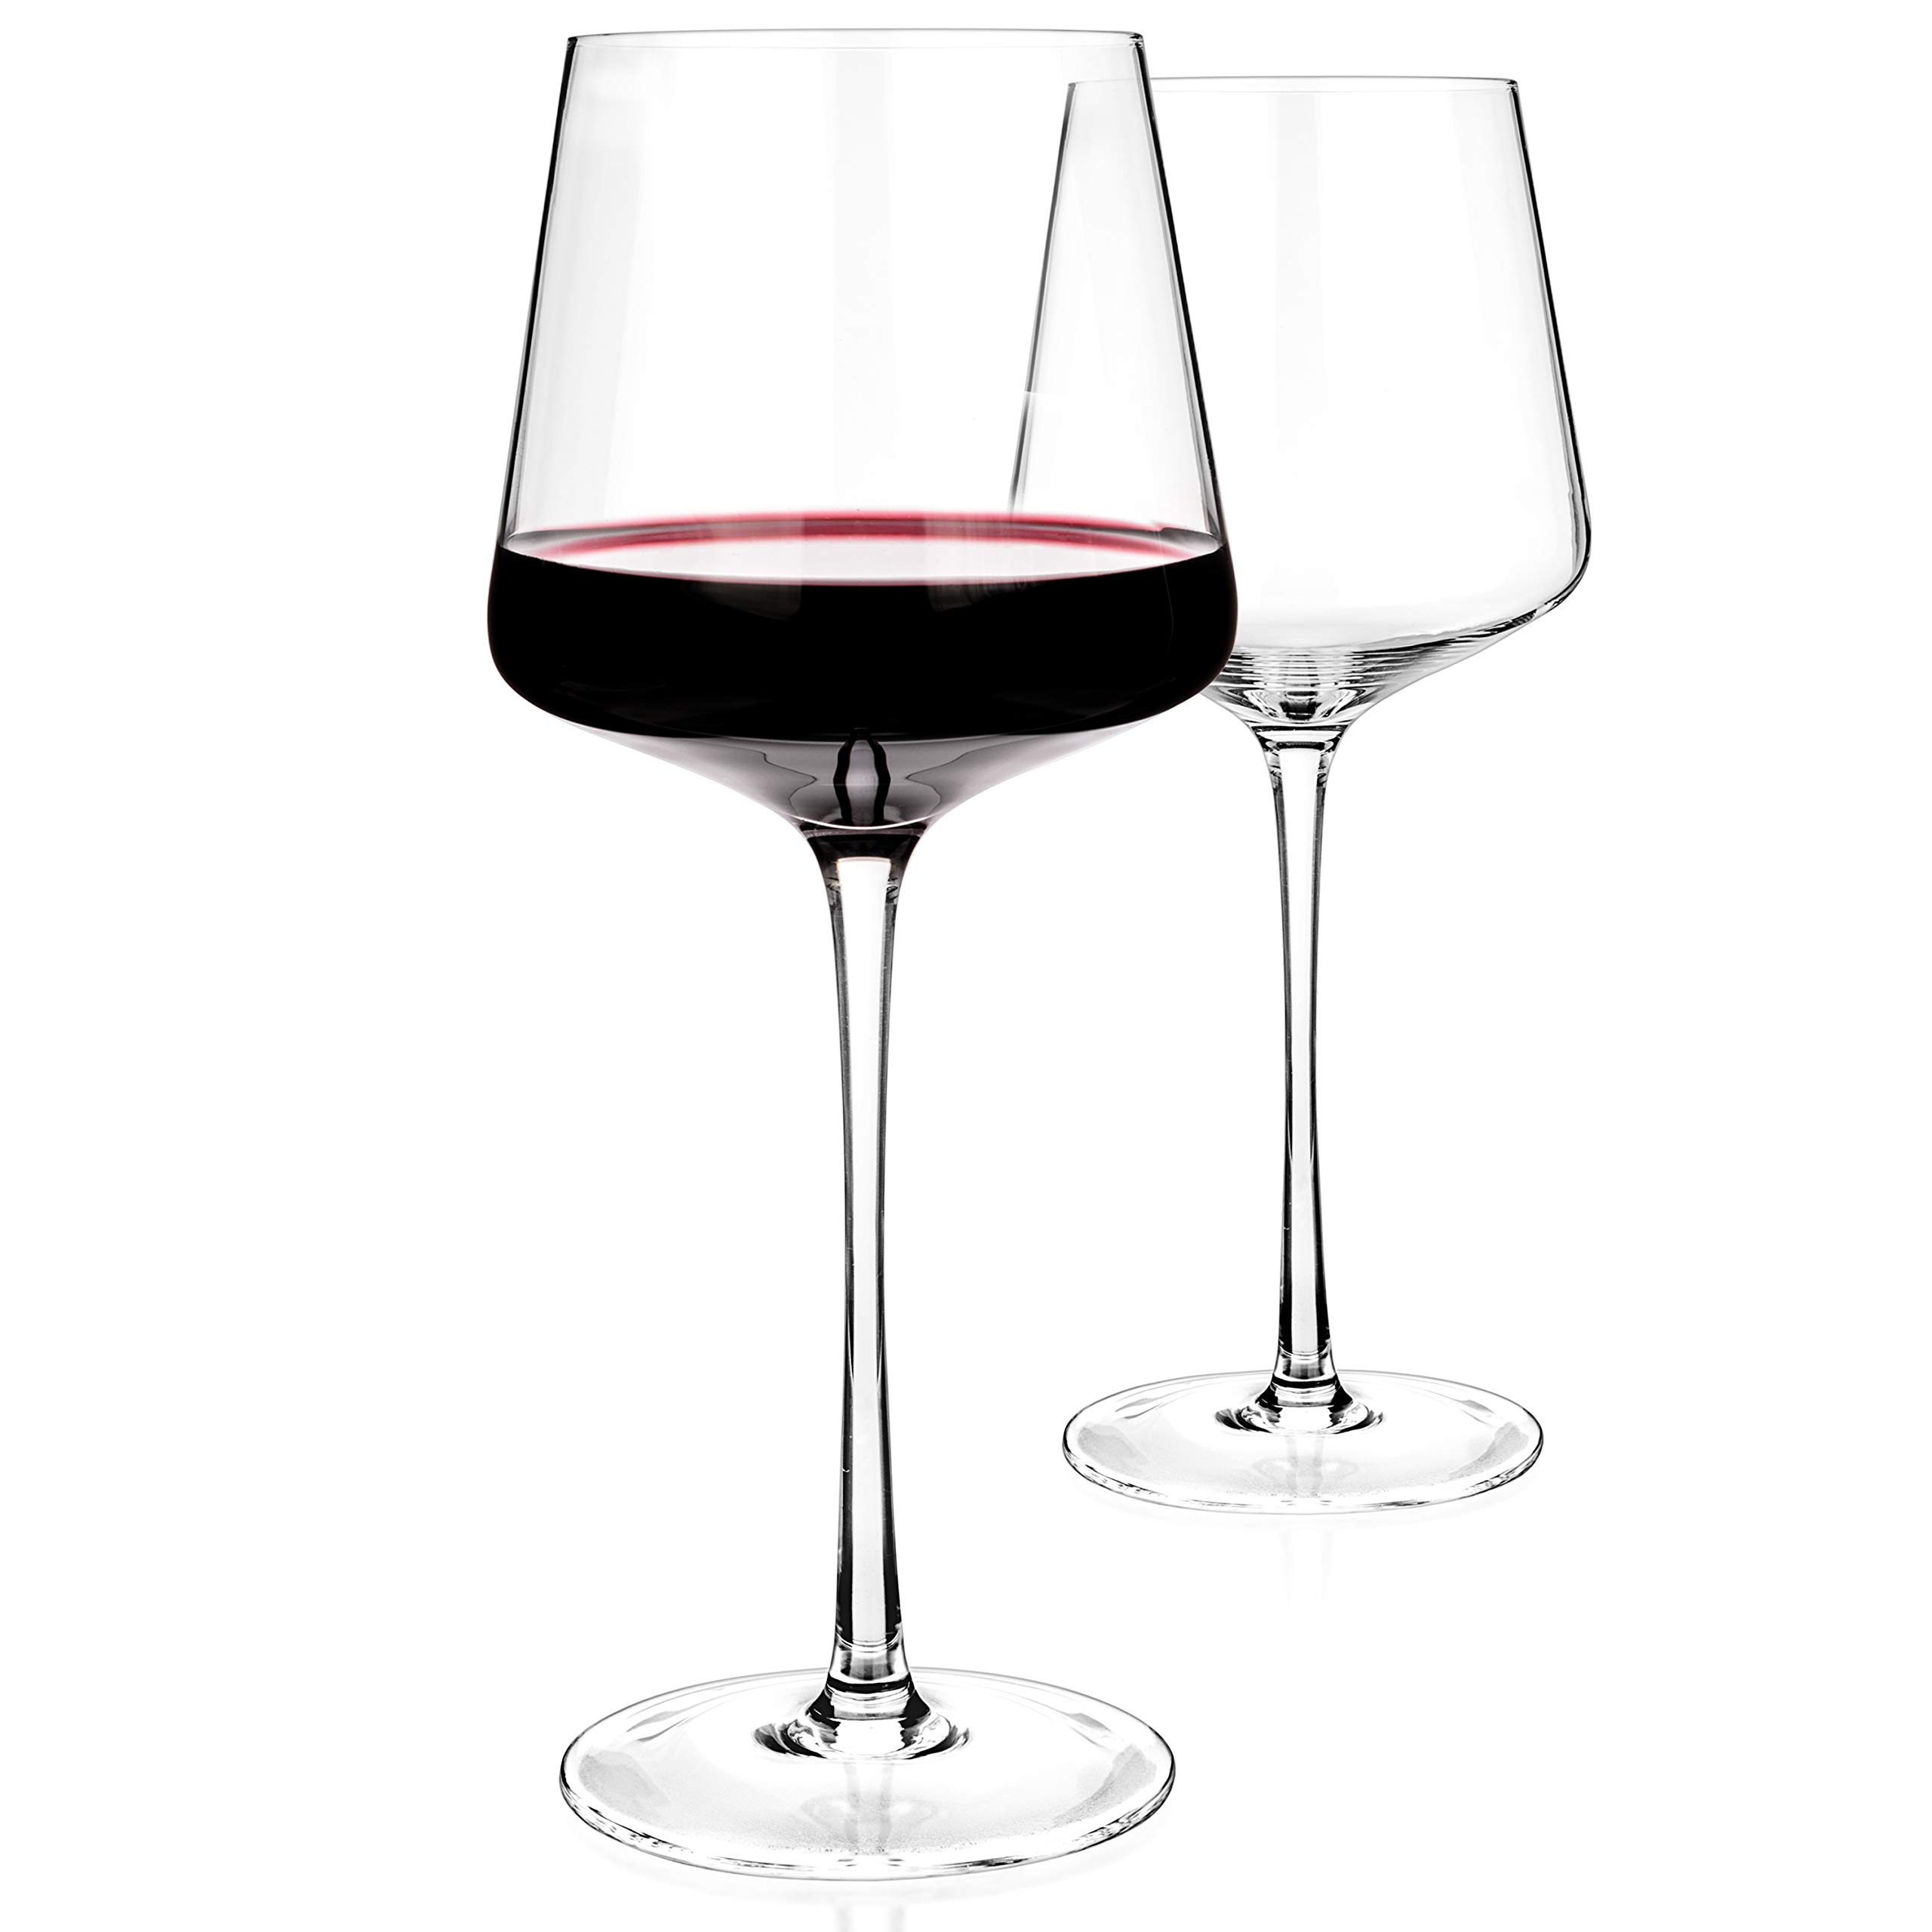 Luxbe - Crystal Wine Glasses 20.5-ounce, Set of 4 - Red or White Wine Large Glasses - 100% Lead Free Glass - Pinot Noir - Burgundy - Bordeaux - 600ml by Luxbe (Image #6)